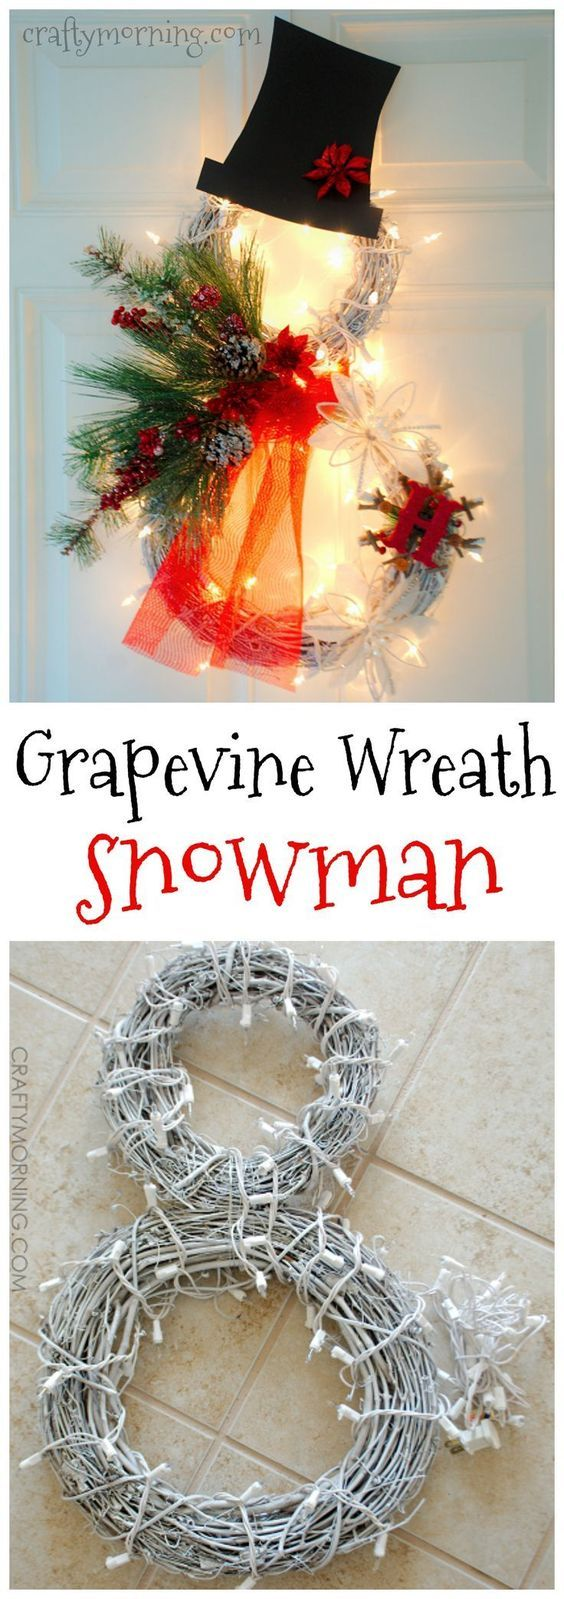 Lighted snowman wreath using grapevine wreaths Cute